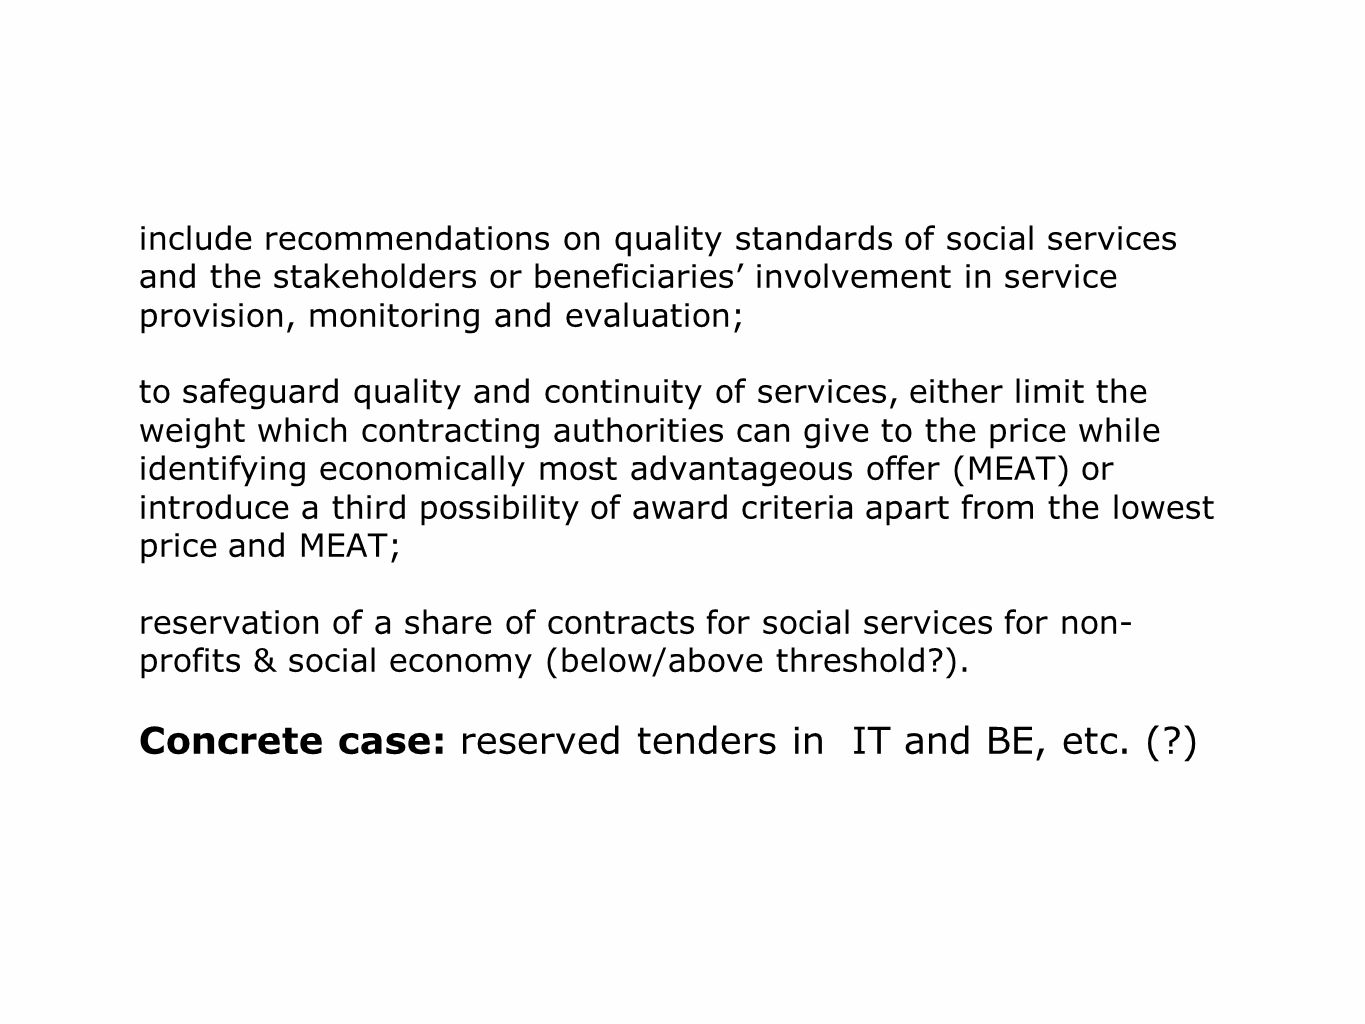 include recommendations on quality standards of social services and the stakeholders or beneficiaries' involvement in service provision, monitoring and evaluation; to safeguard quality and continuity of services, either limit the weight which contracting authorities can give to the price while identifying economically most advantageous offer (MEAT) or introduce a third possibility of award criteria apart from the lowest price and MEAT; reservation of a share of contracts for social services for non-profits & social economy (below/above threshold ).